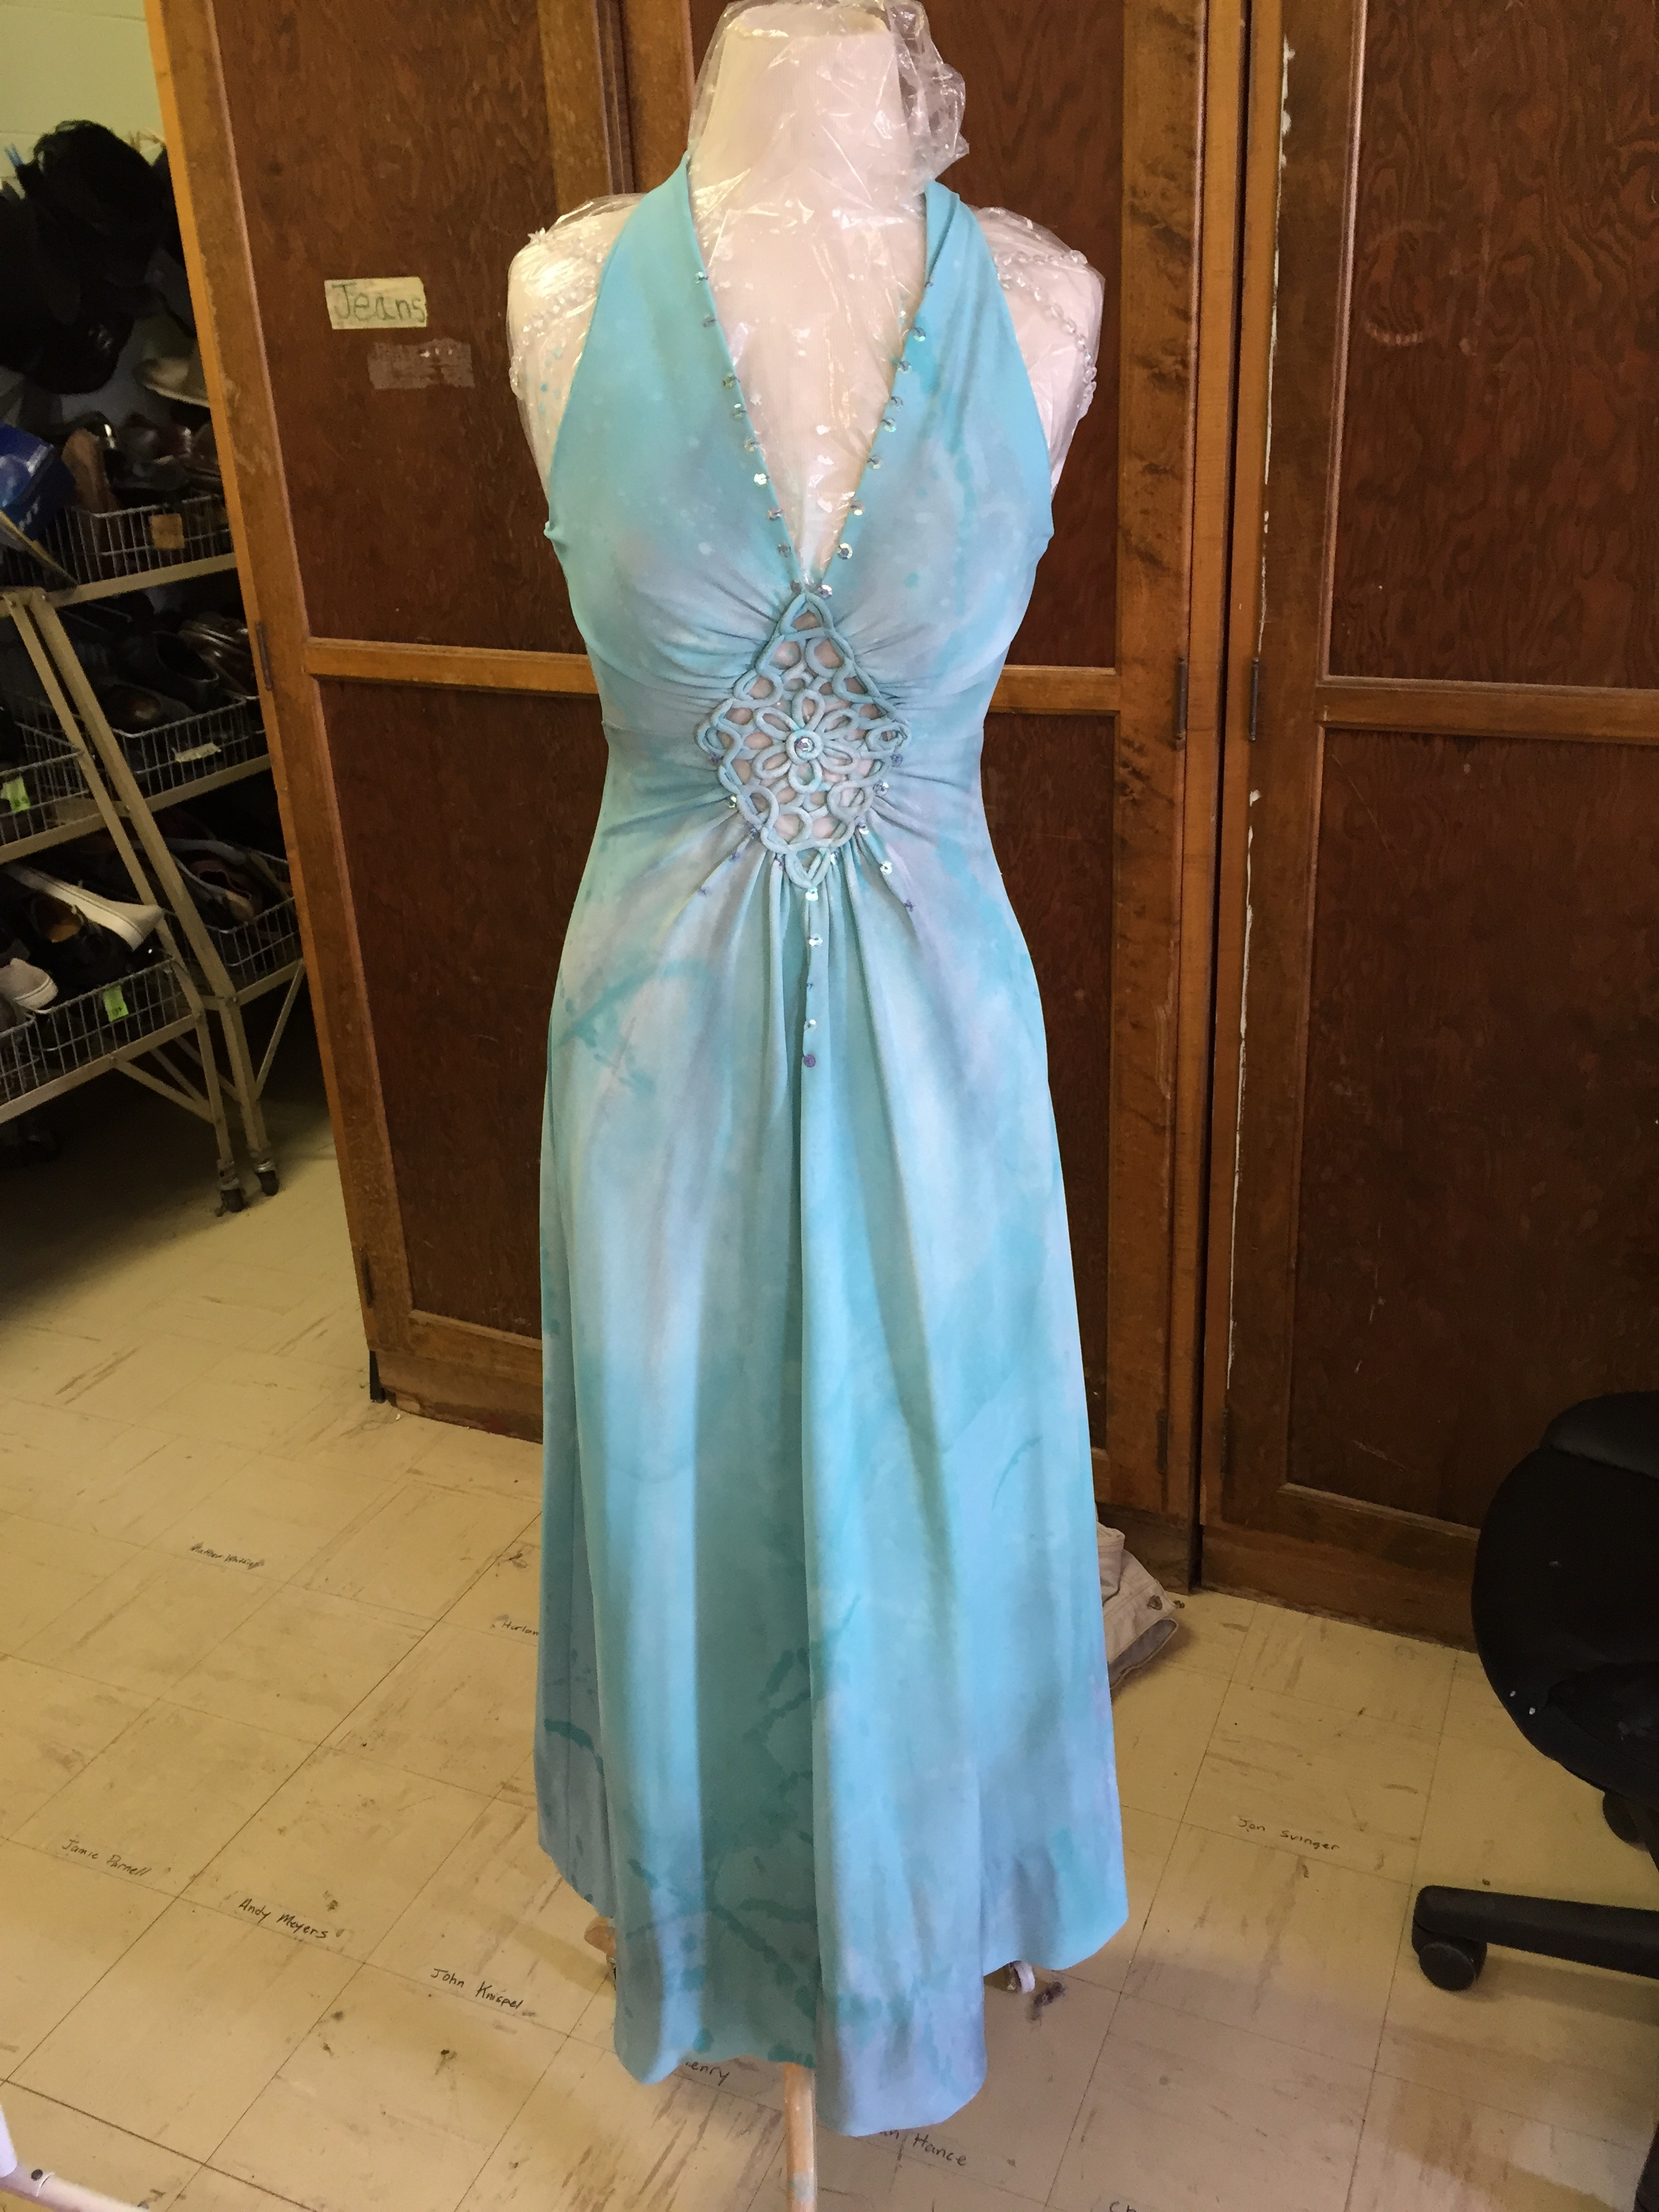 This dress was found in costume stock distressed with mud, paint, and dirt. We treated it with washes of paint to hide the distressing and give the dress a marble appearance.